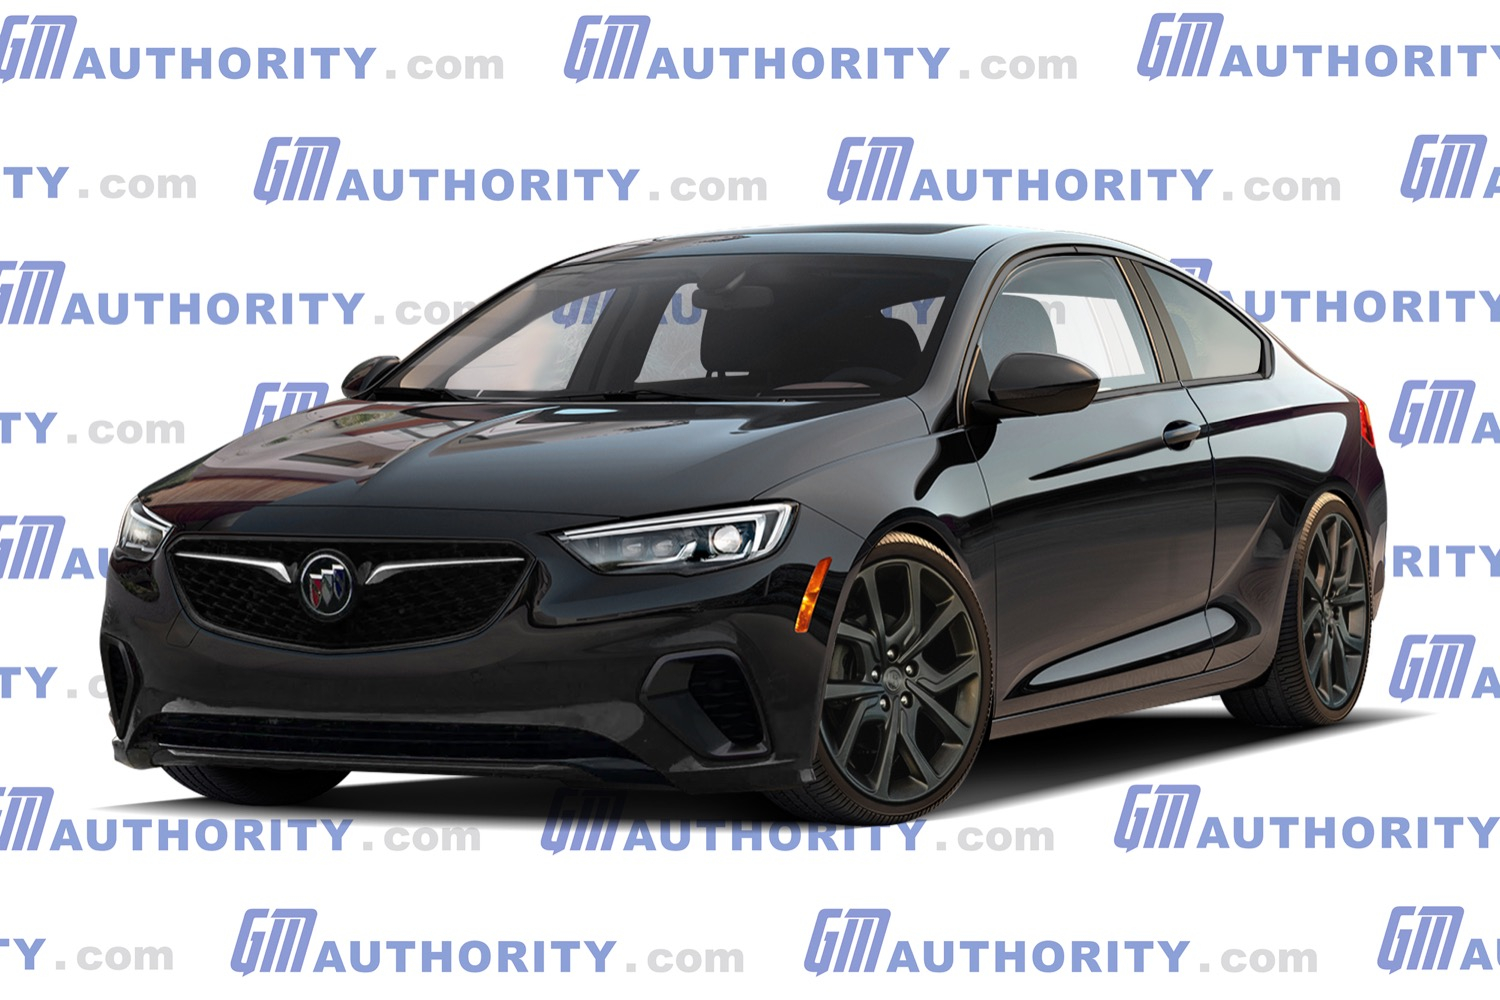 Modern Buick Regal Gnx Rendered | Gm Authority New 2022 Buick Regal Discontinued, Release Date, Engine